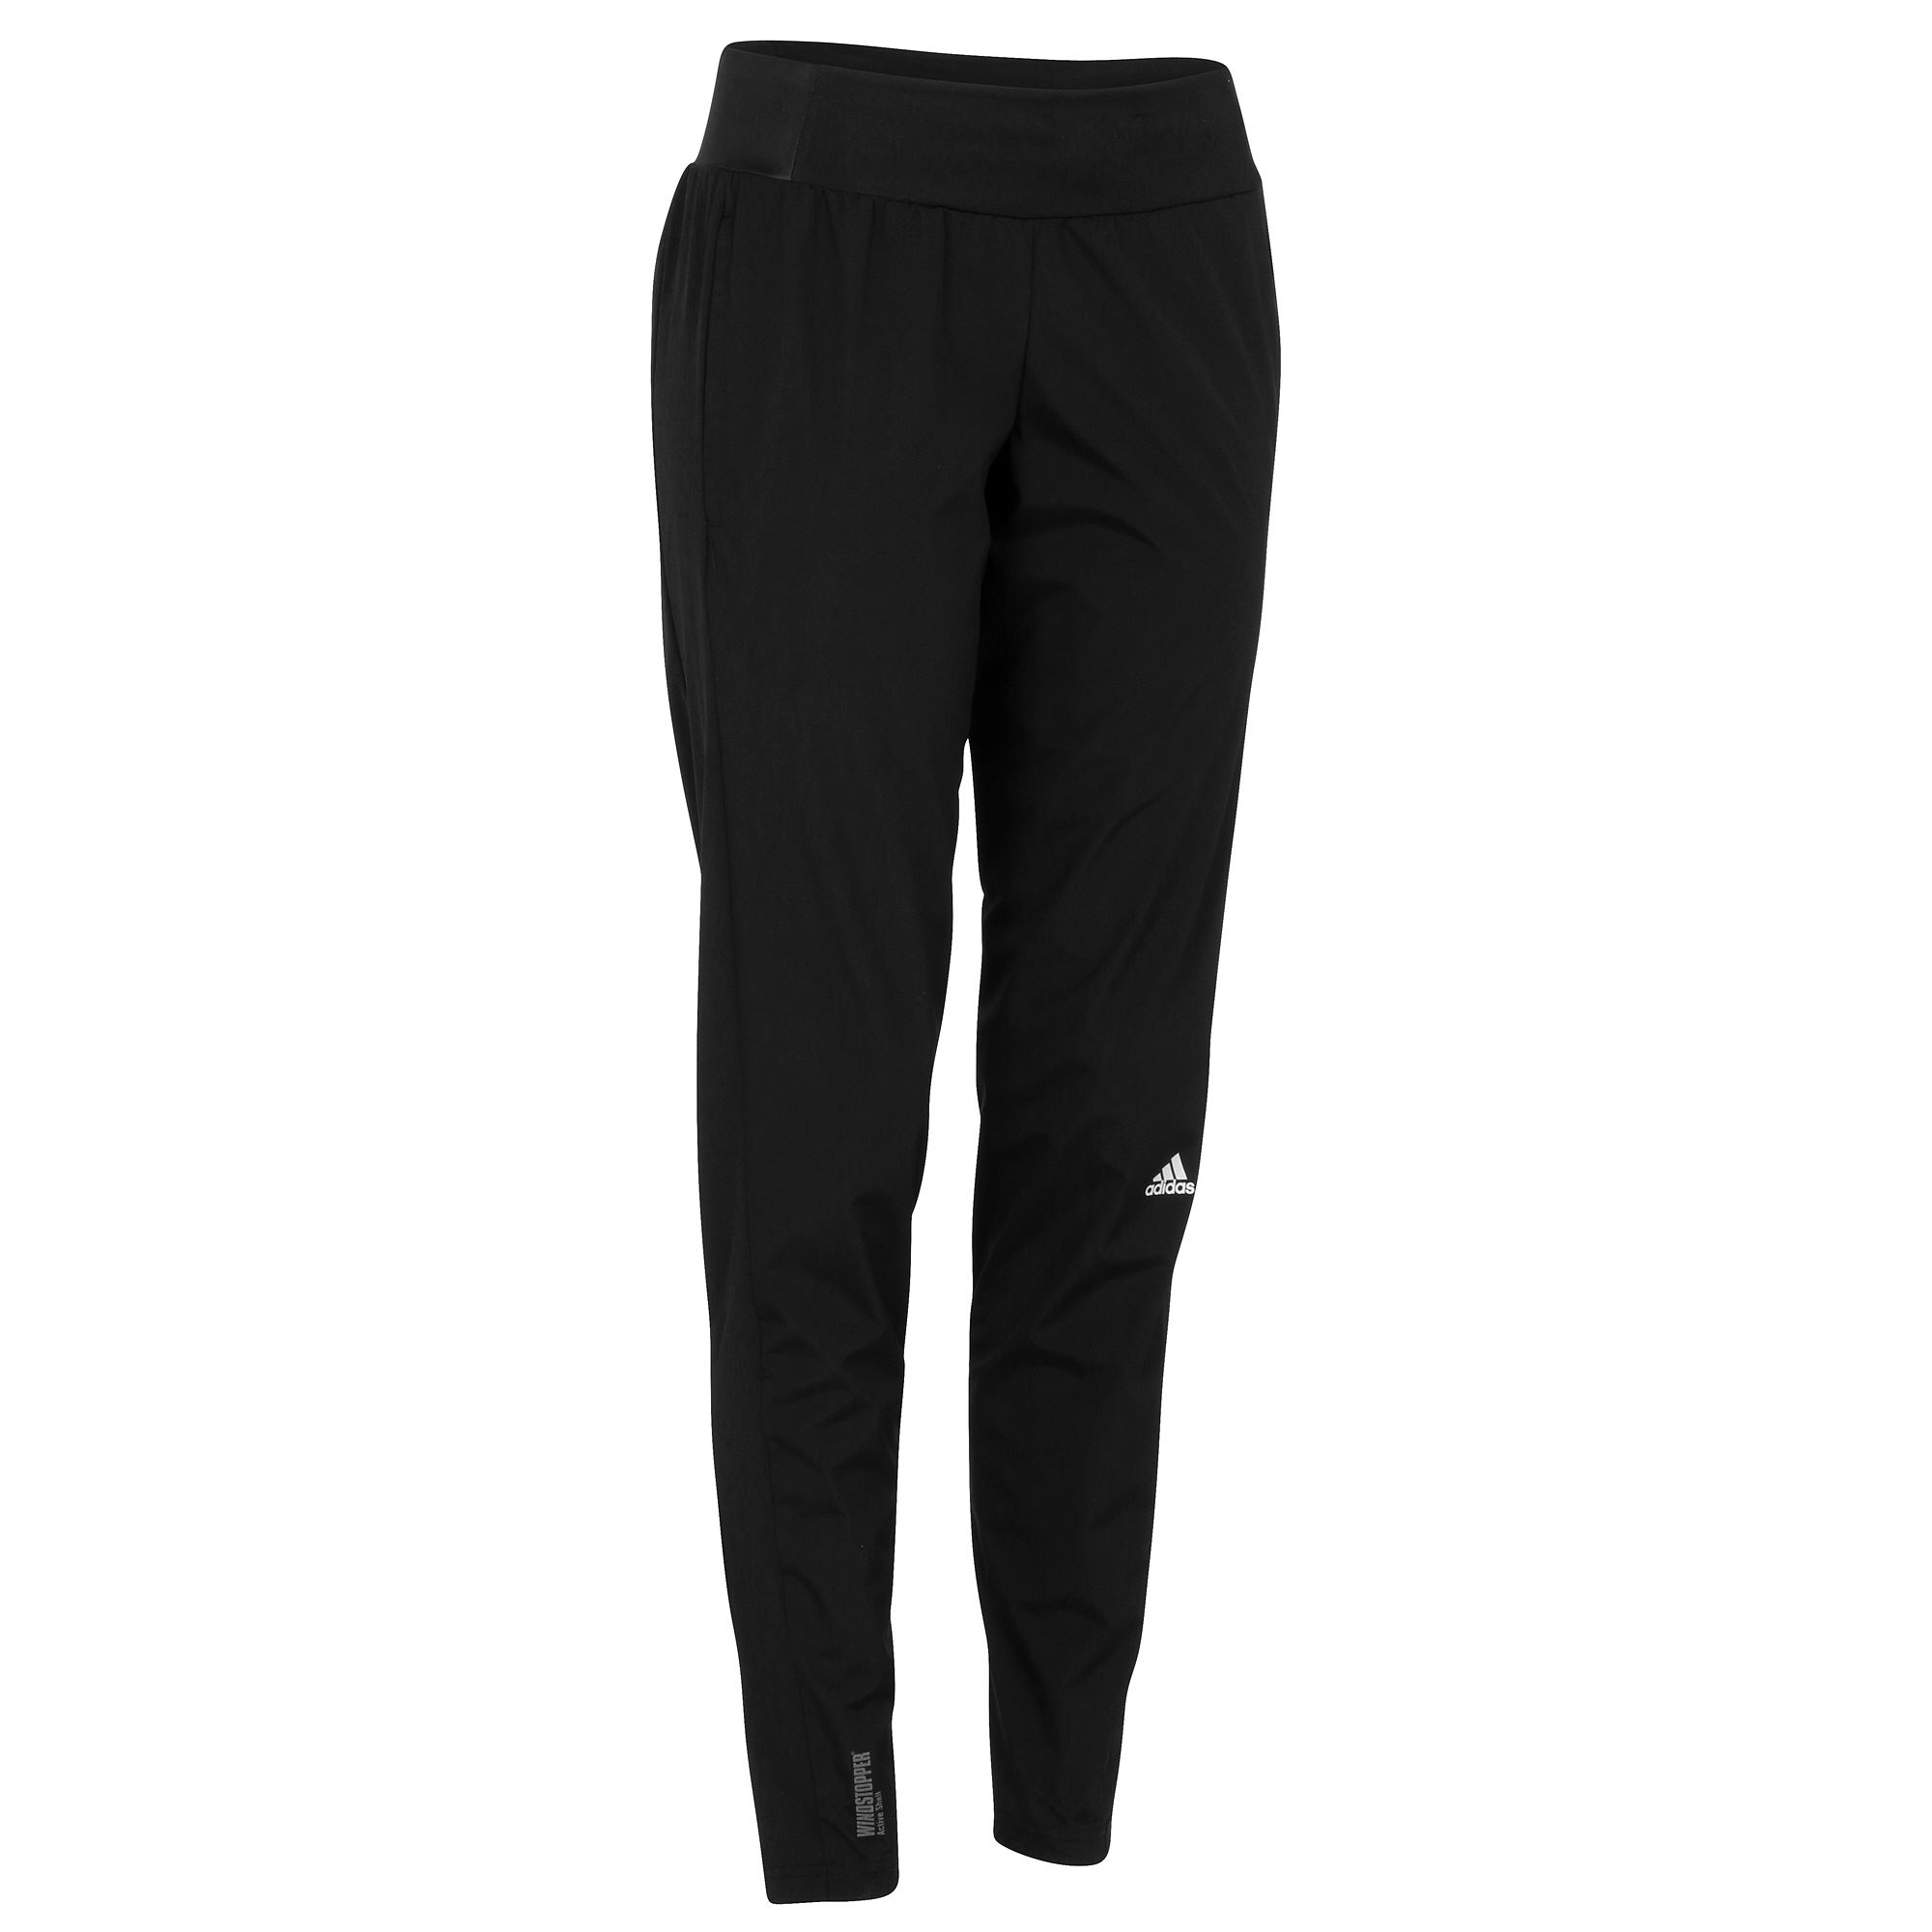 pantalons de running adidas women 39 s supernova gore windstopper pant aw15 wiggle france. Black Bedroom Furniture Sets. Home Design Ideas